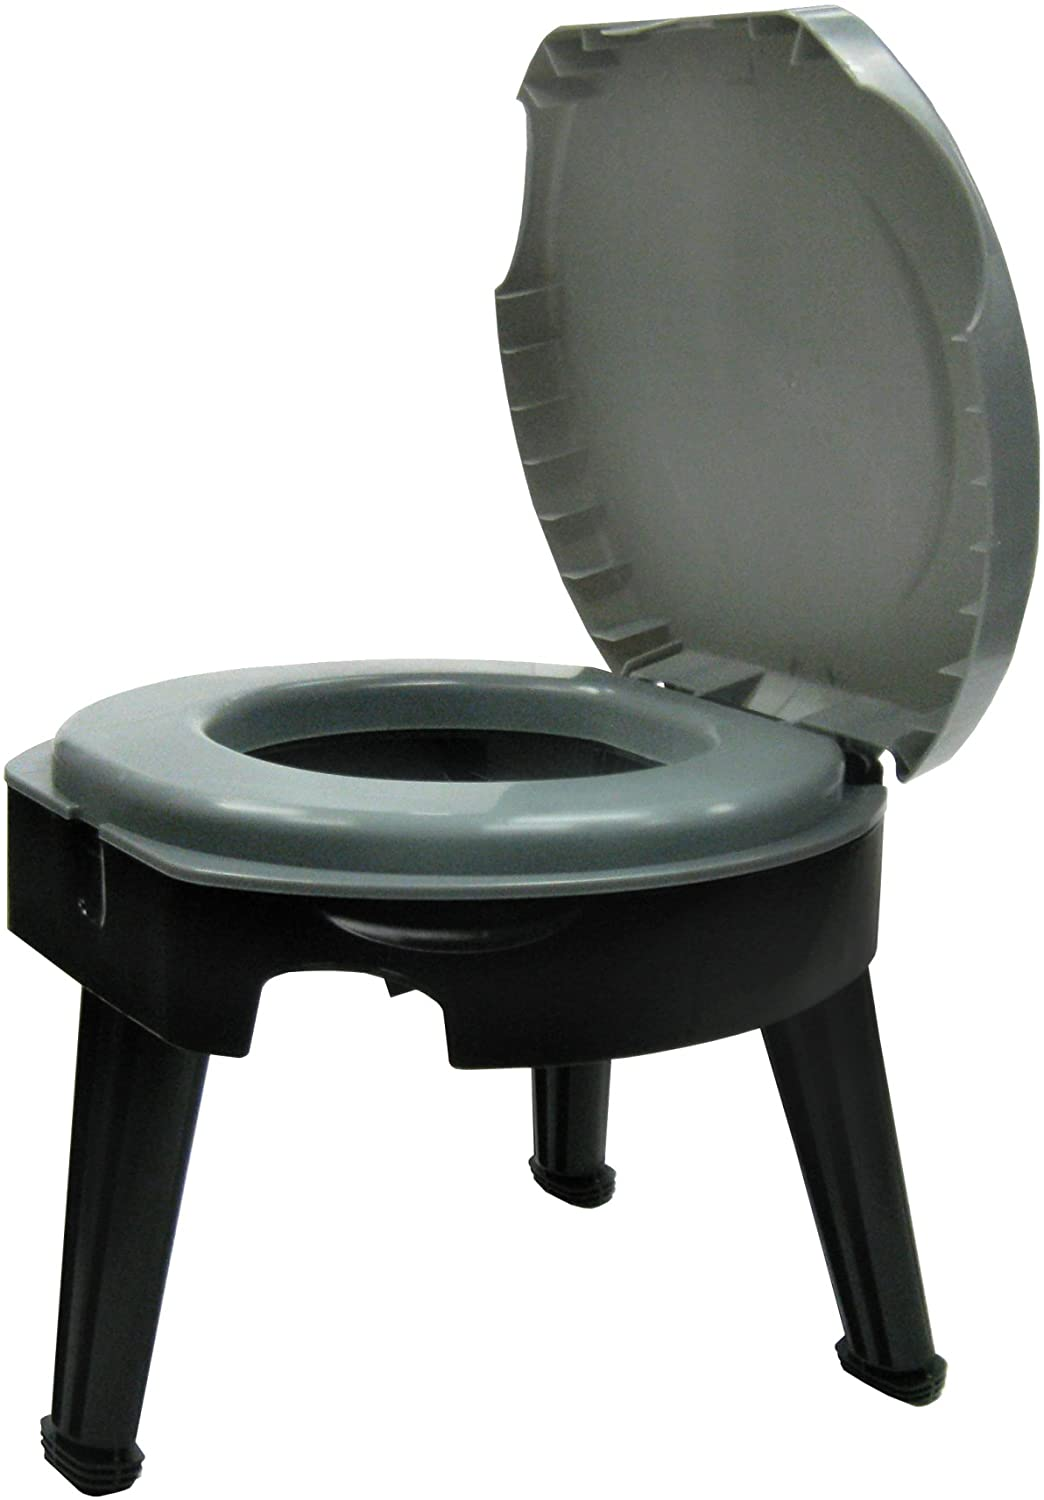 """Reliance Products Fold-to-Go Collapsible Portable Toilet, 9824-21W, Gray/Black, 14.5""""x14.5""""x14.5"""""""